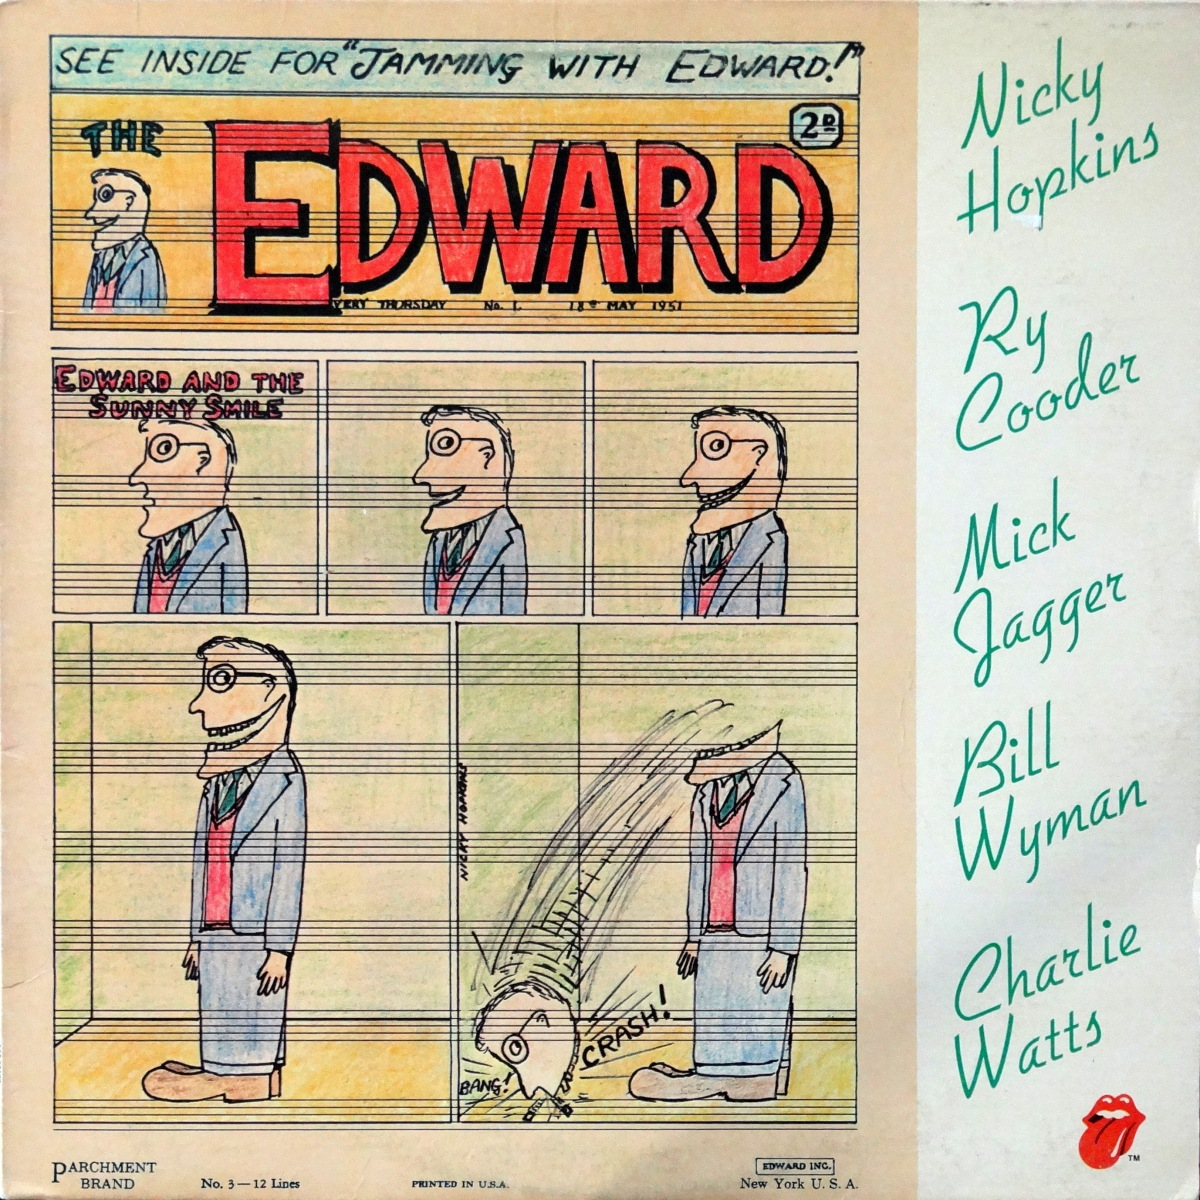 From The Stacks: 'Jamming With Edward'